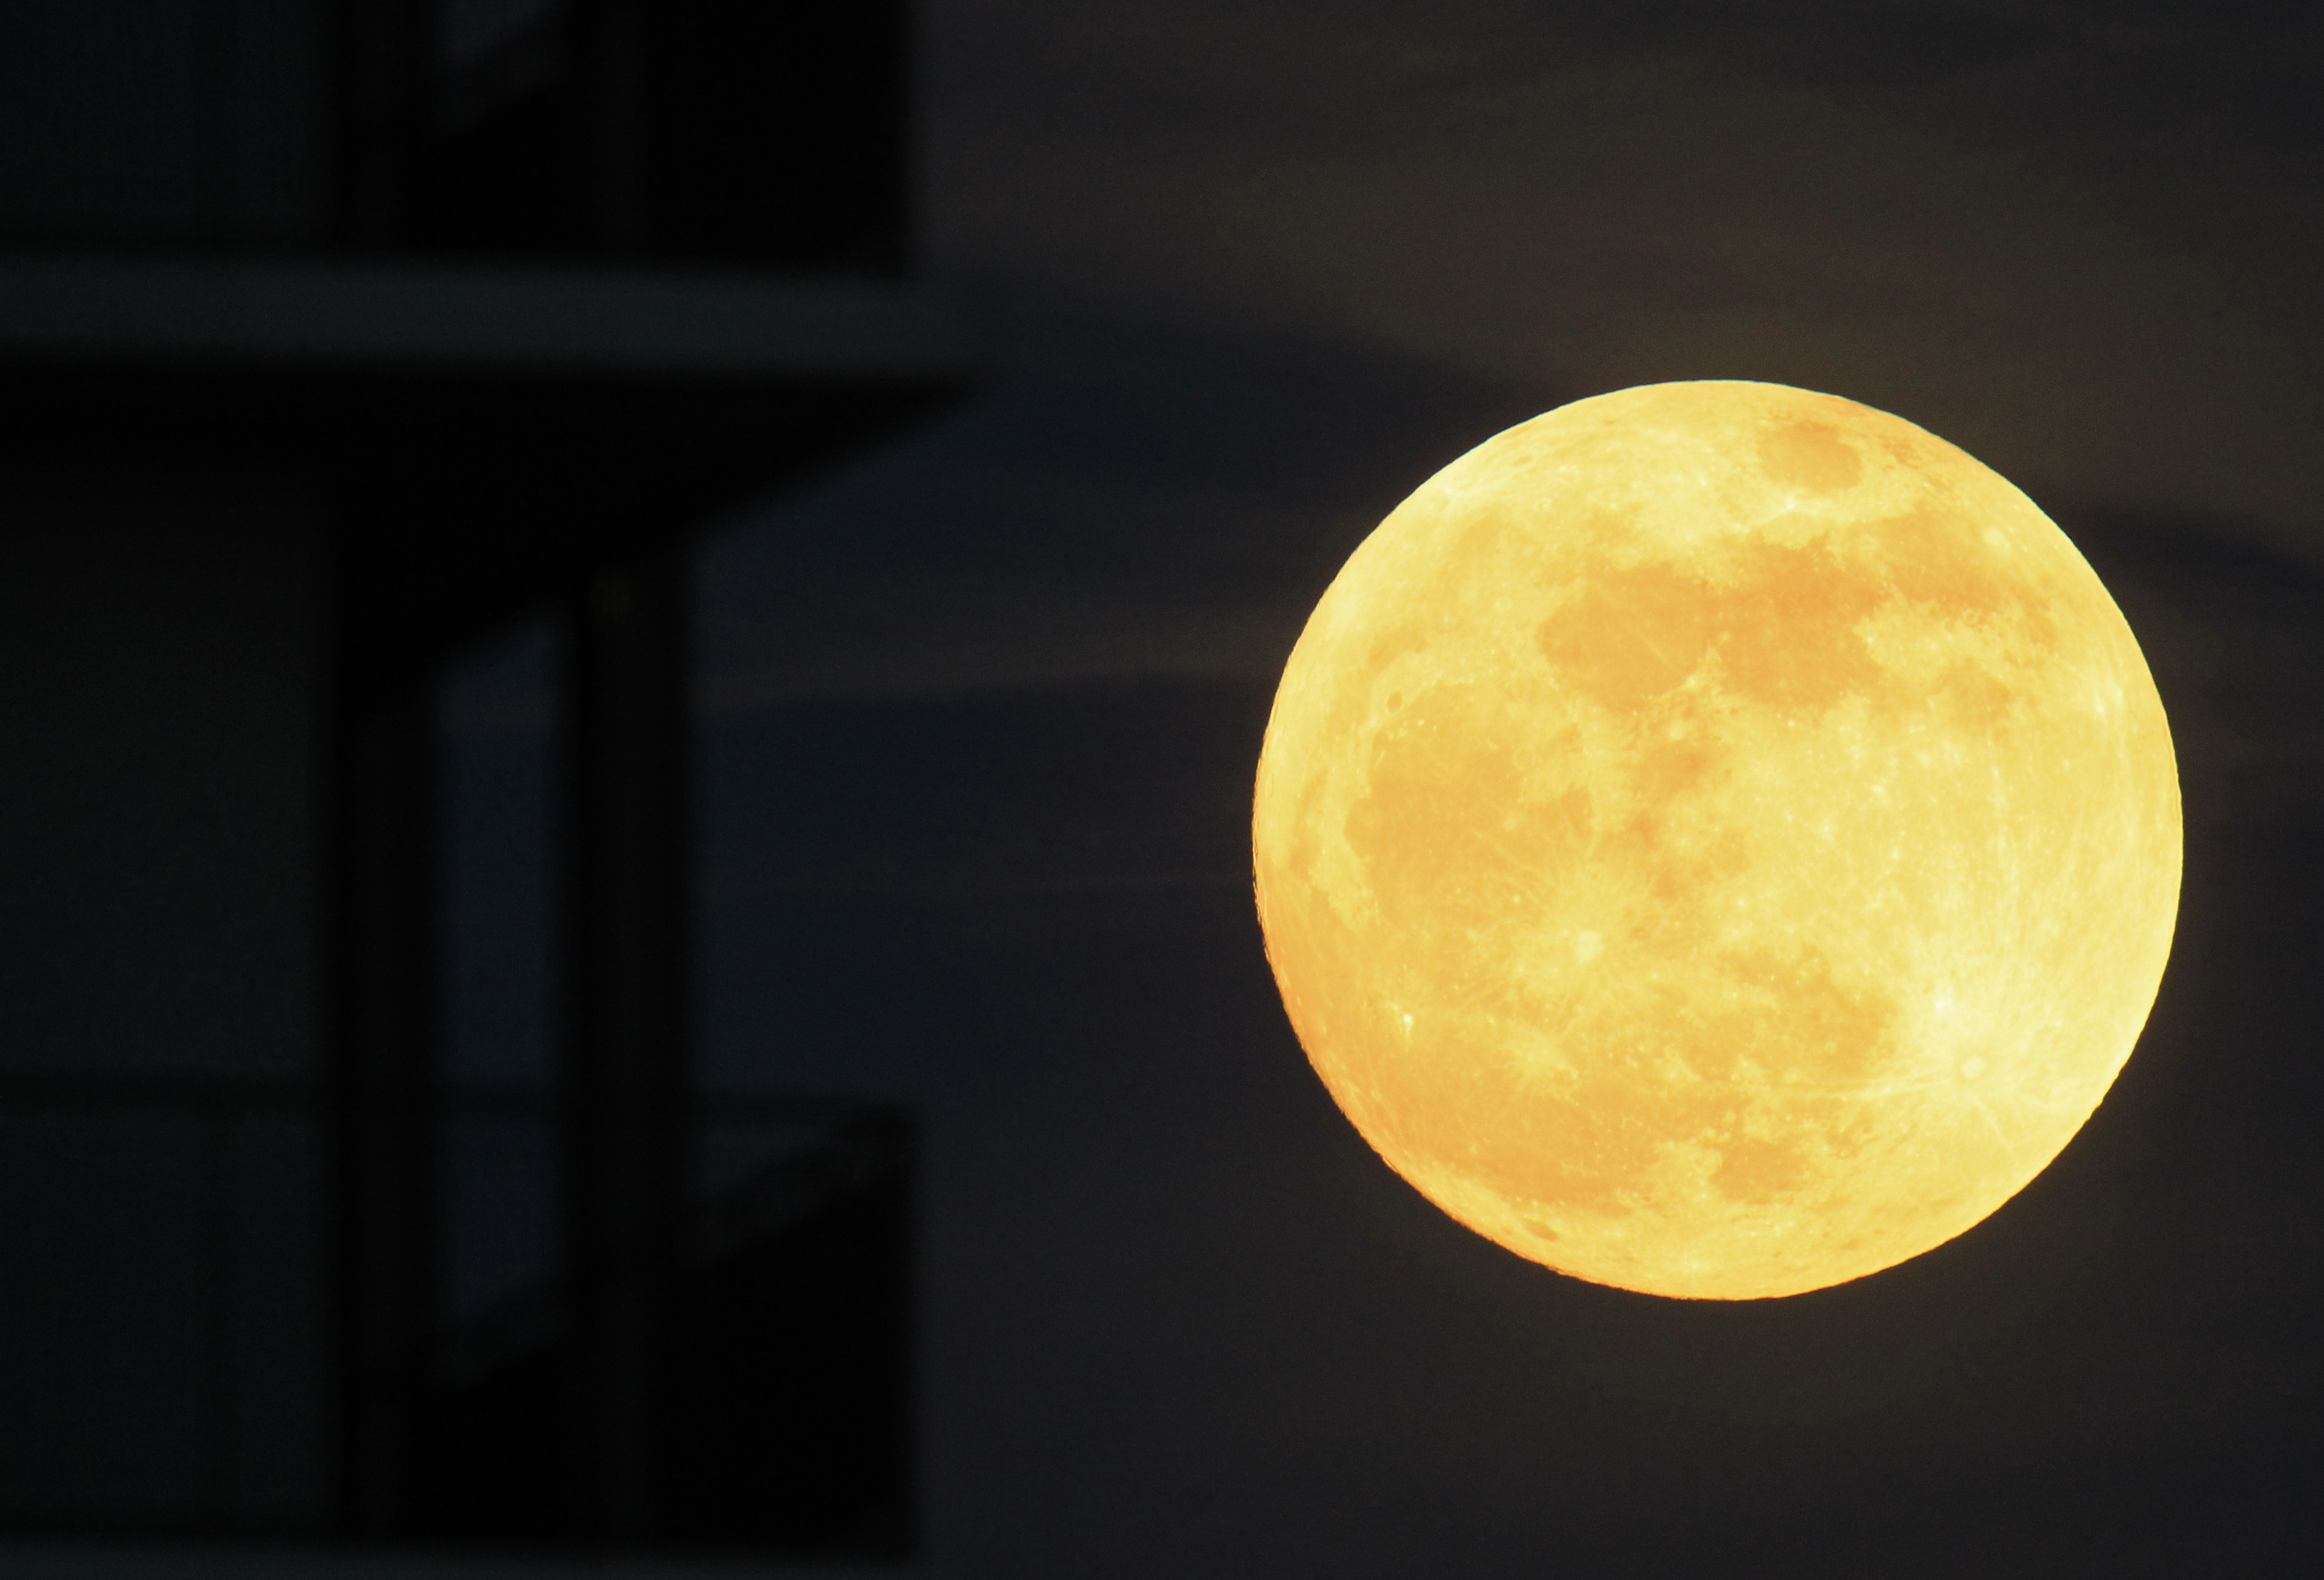 The moon rises near an apartment block in Bucharest on May 5, 2012.